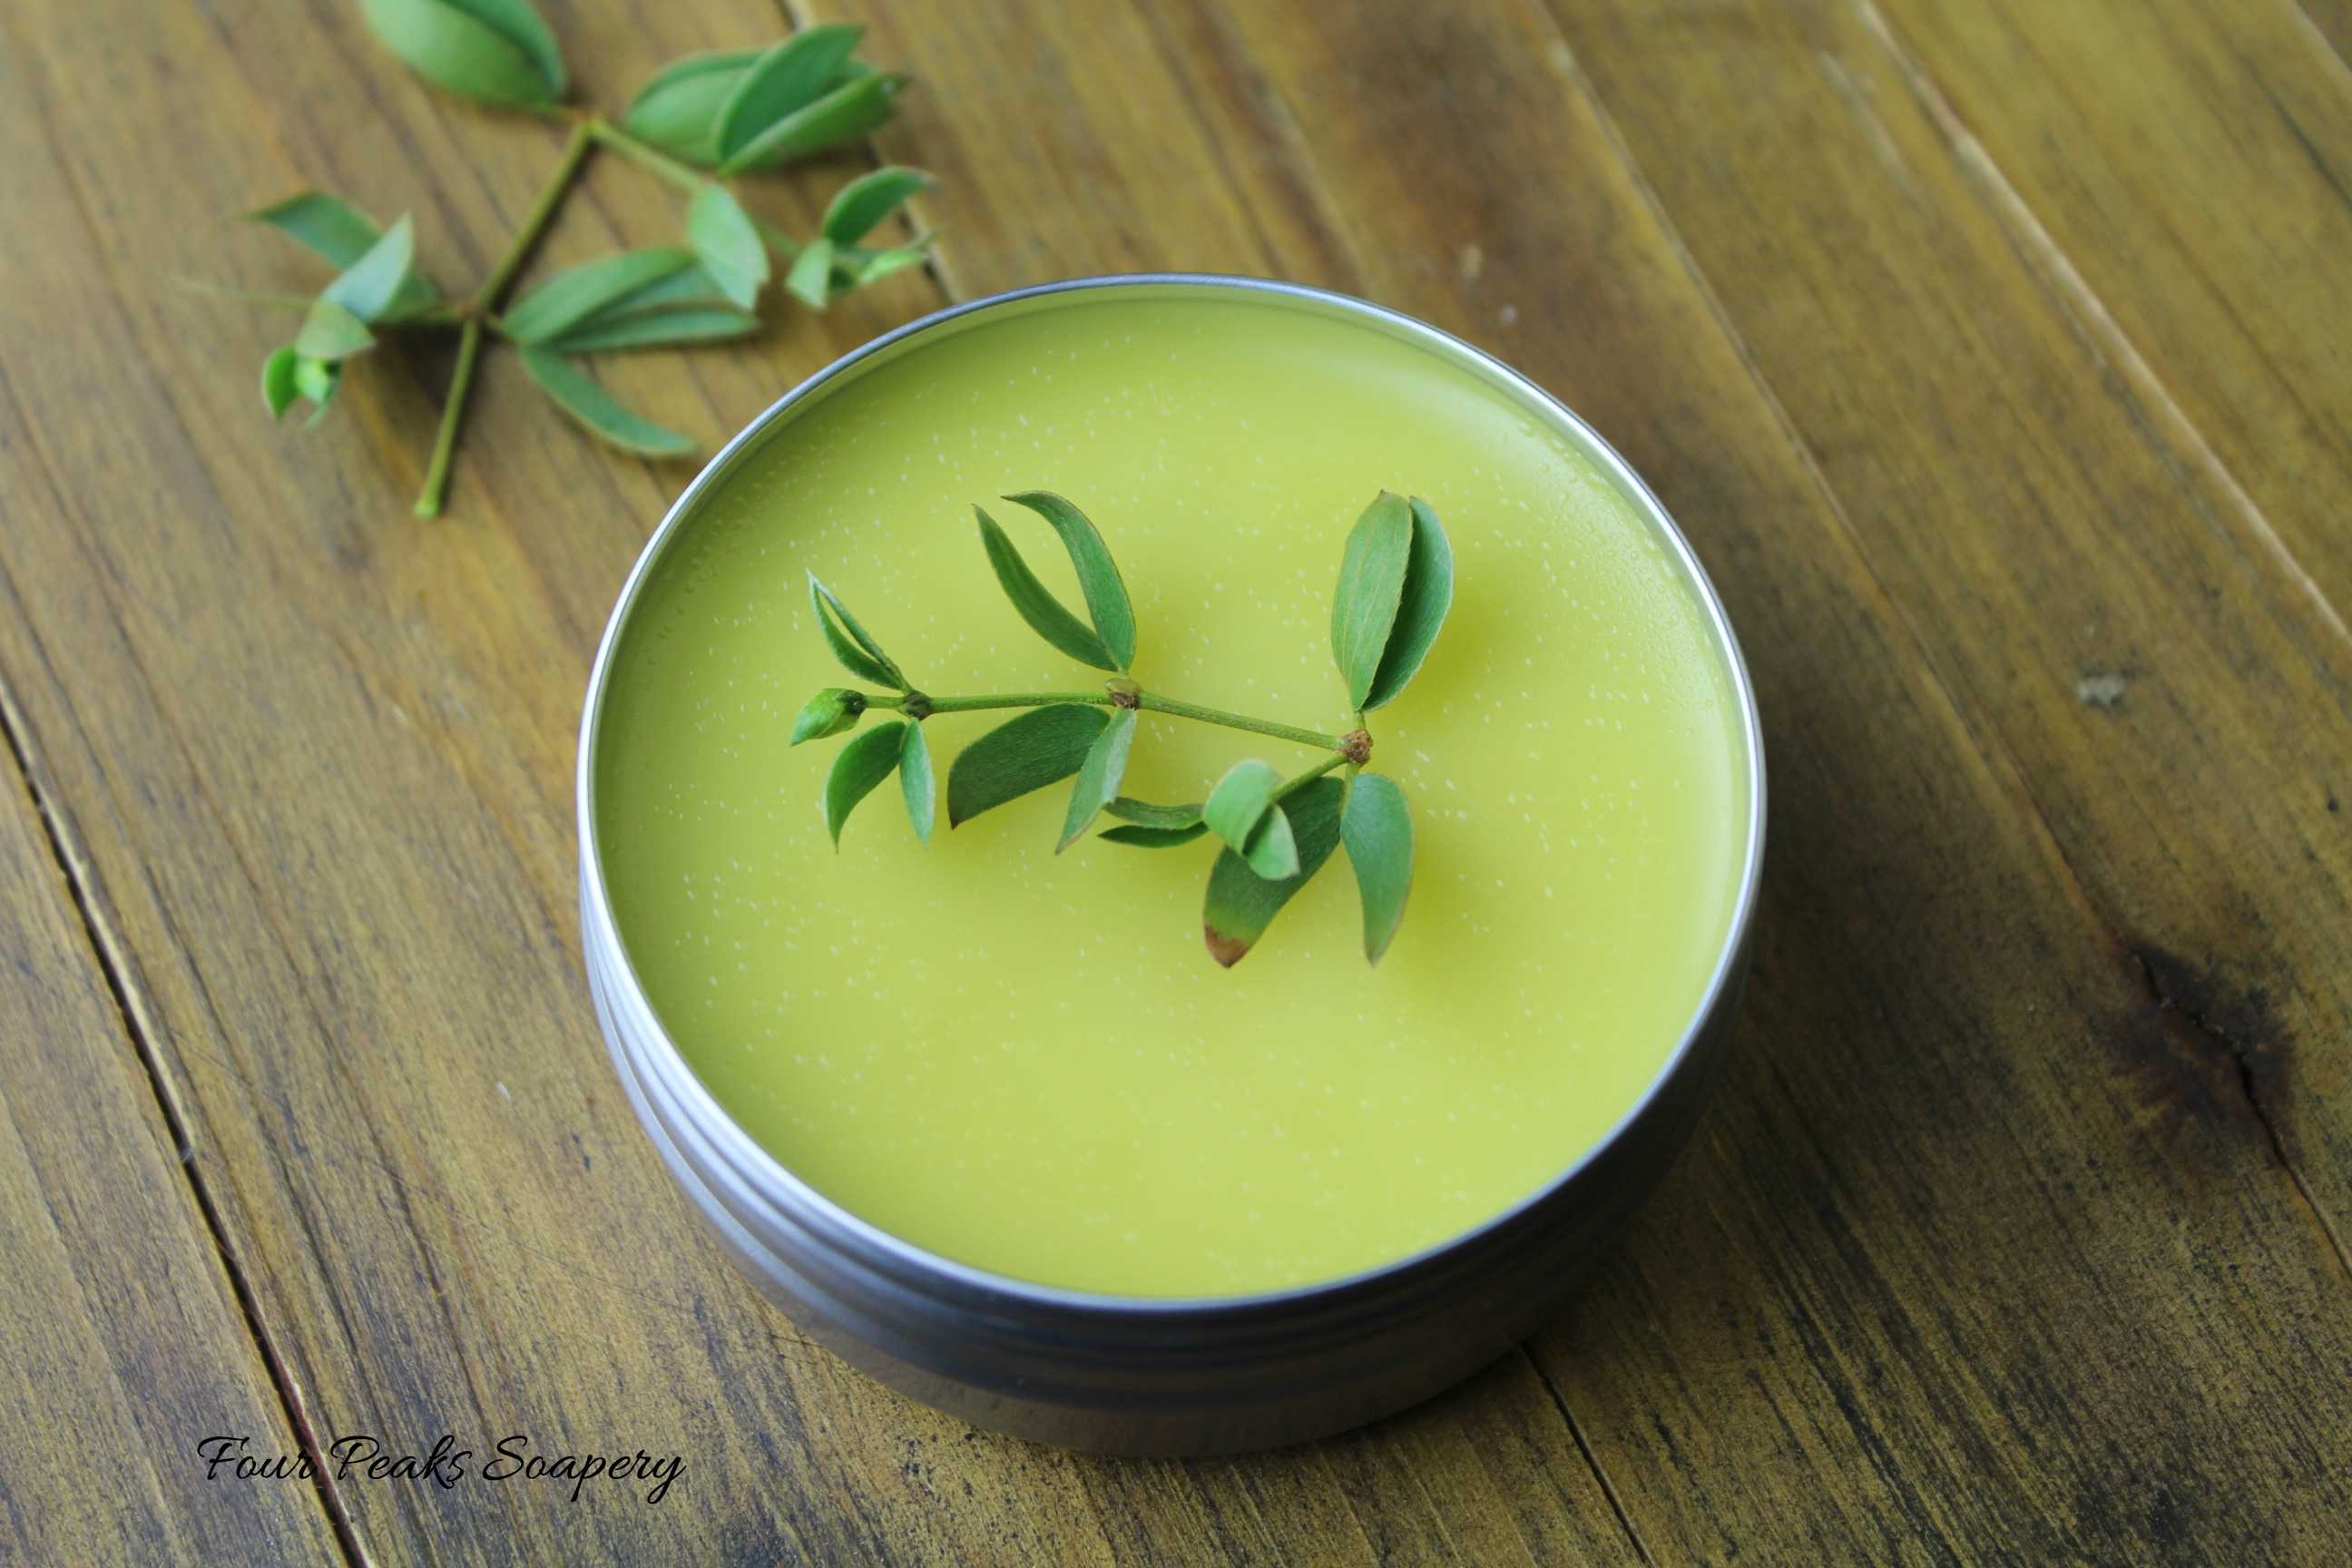 Chaparral salve - a simple soothing blend of chaparral, olive oil and beeswax, wonderful to support minor cuts, scrapes, burns and dry skin.